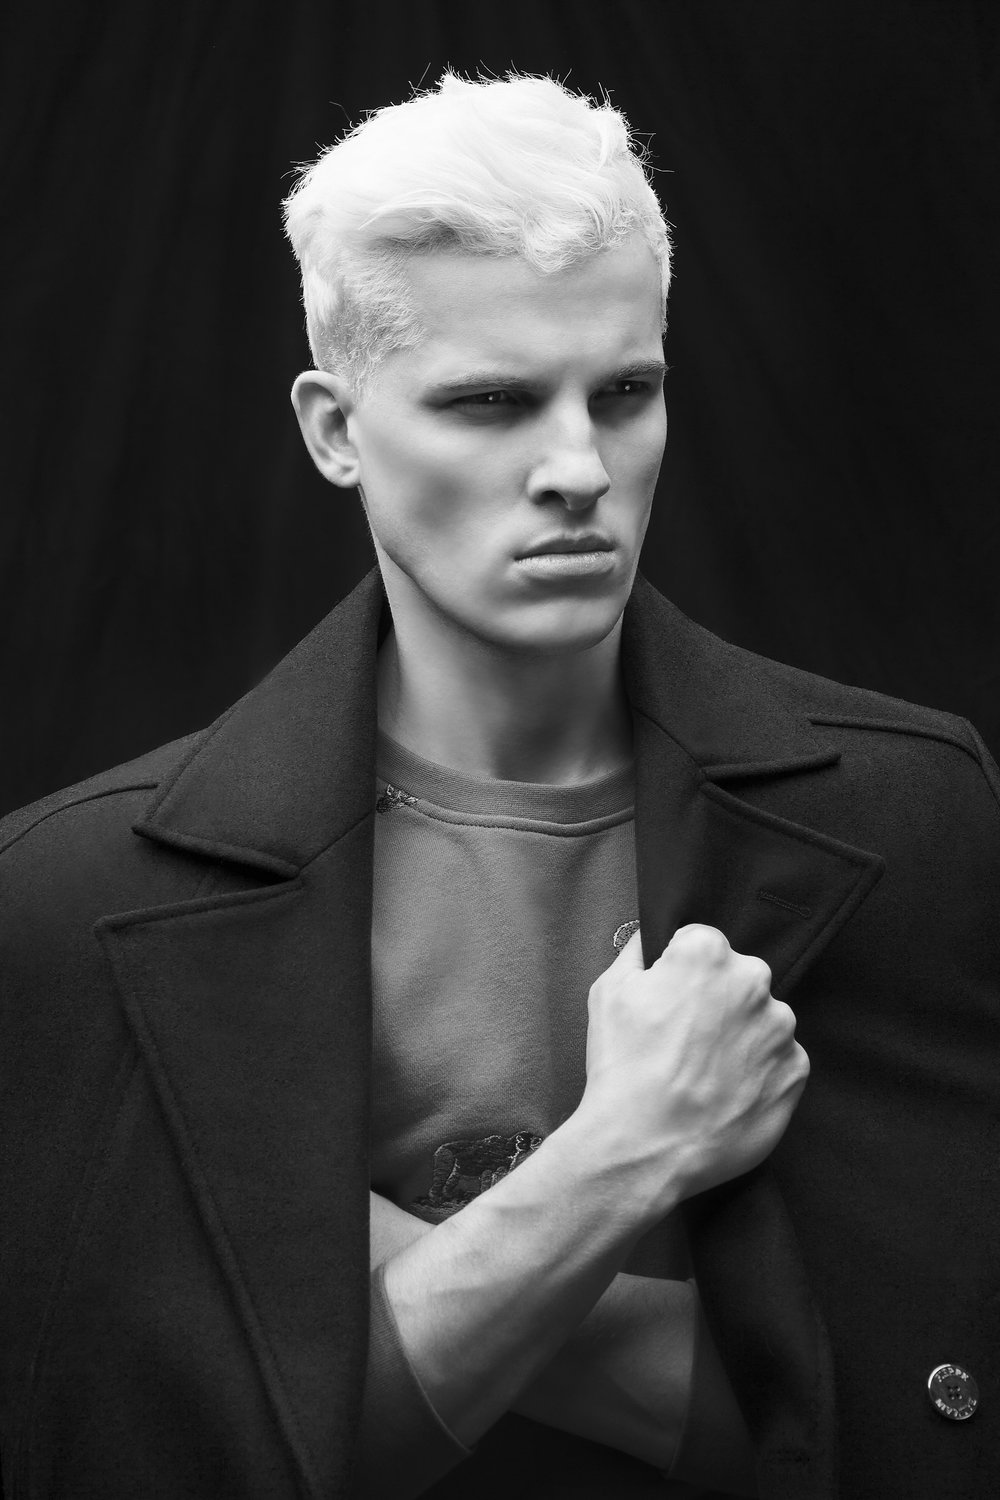 Chris Hernandez for The Fashionisto